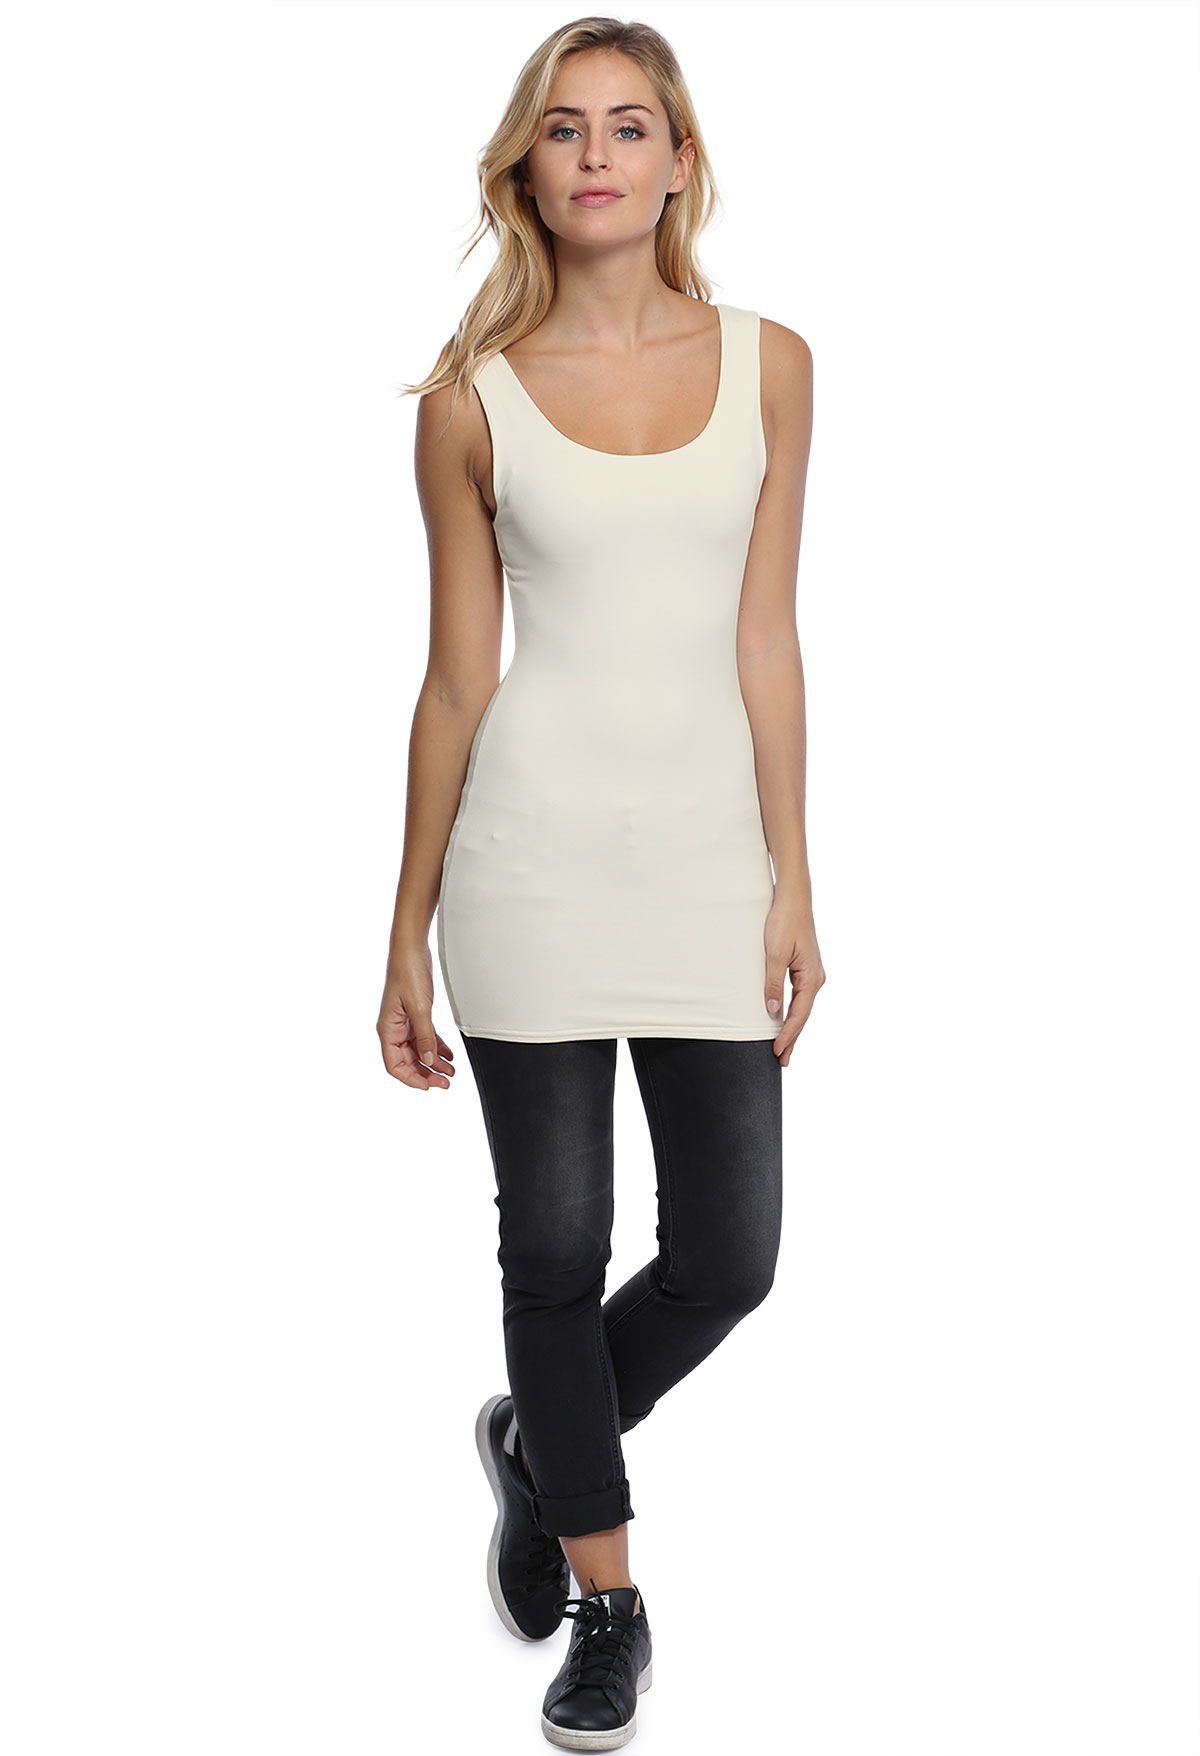 ROXANE LONG TANK TOP